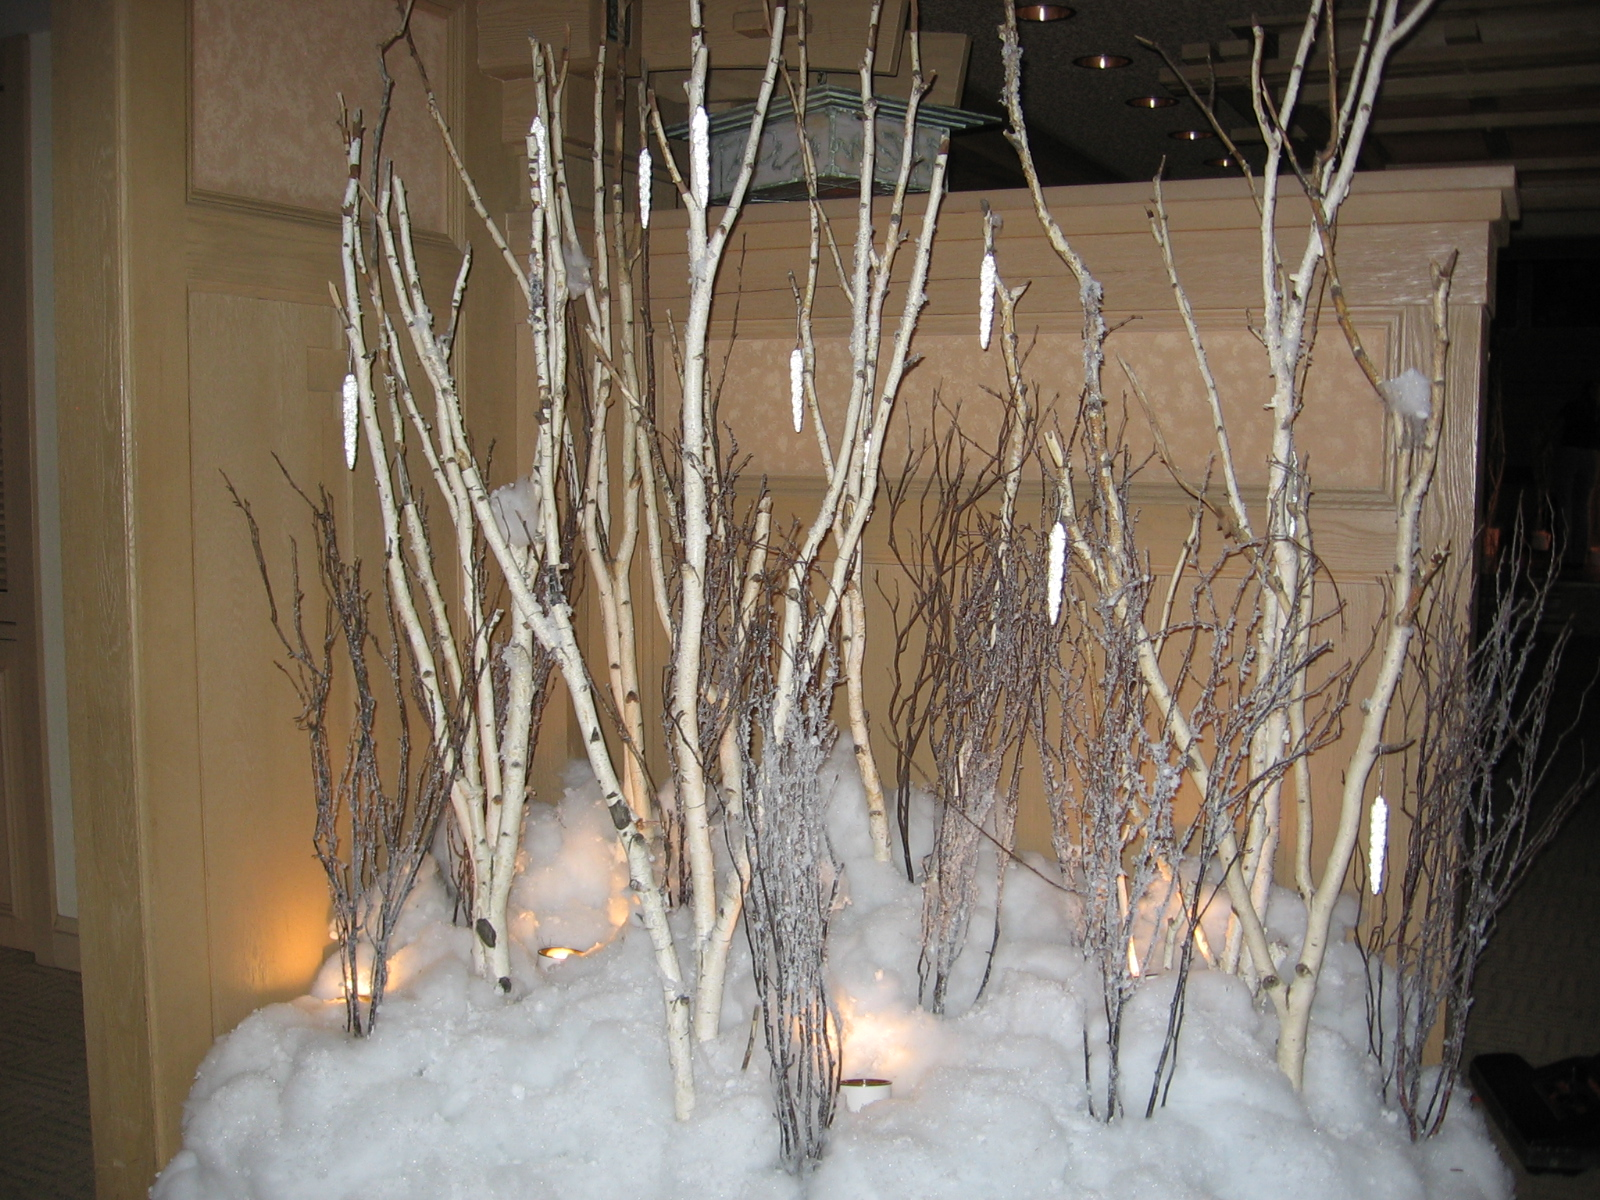 see birch trees under props - Birch Christmas Decorations